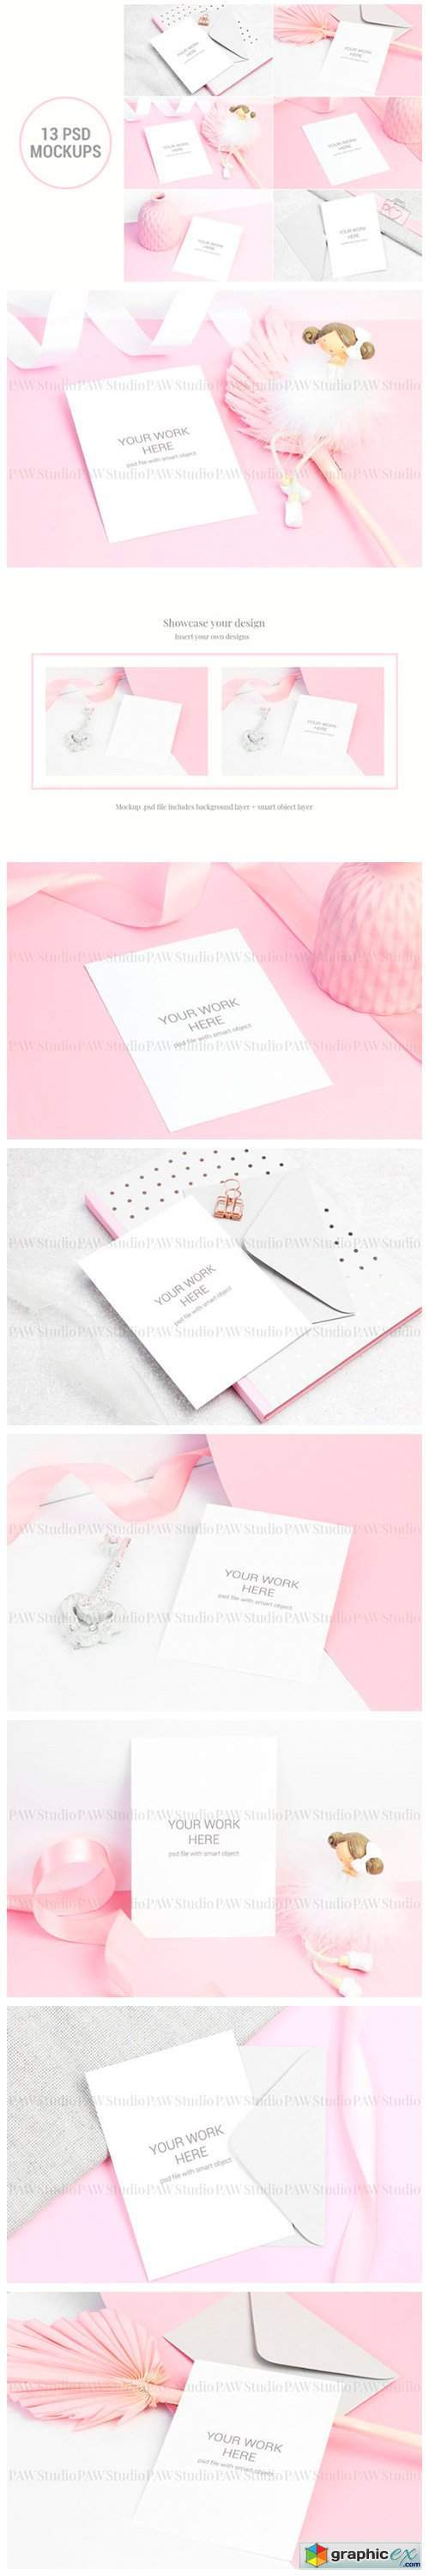 Set of Invitation Card Mockup